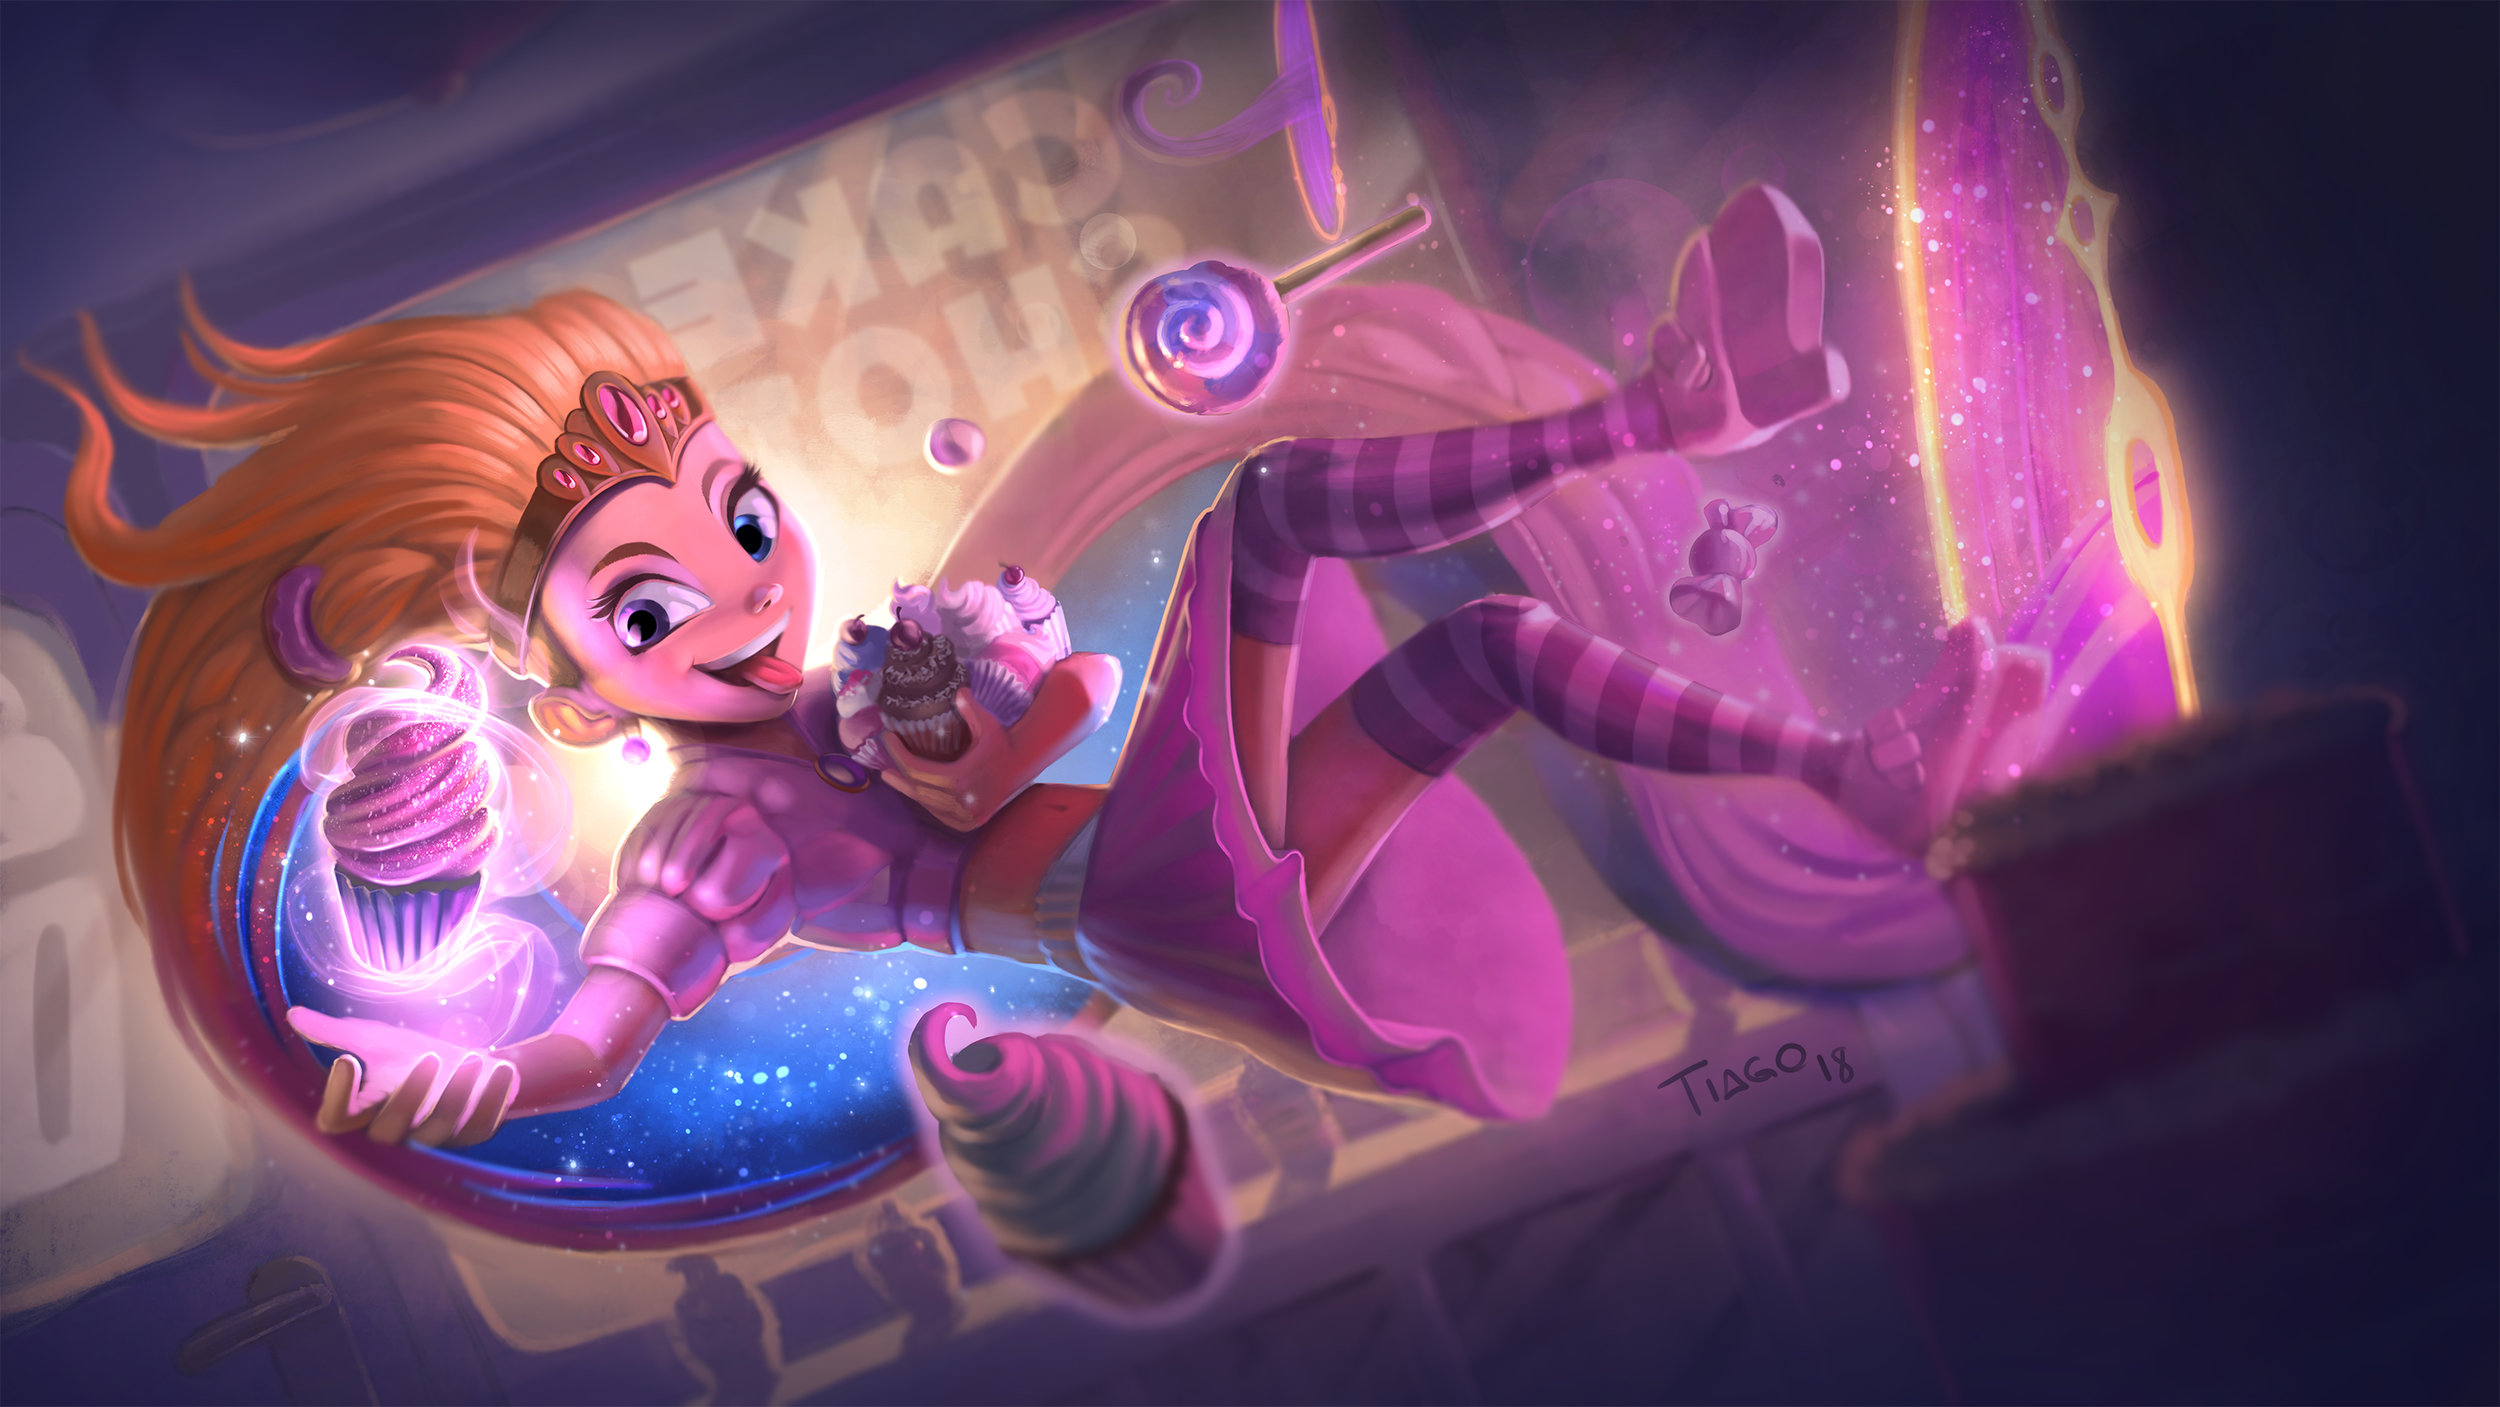 Splash Art Image Illustration LoL League of Legends